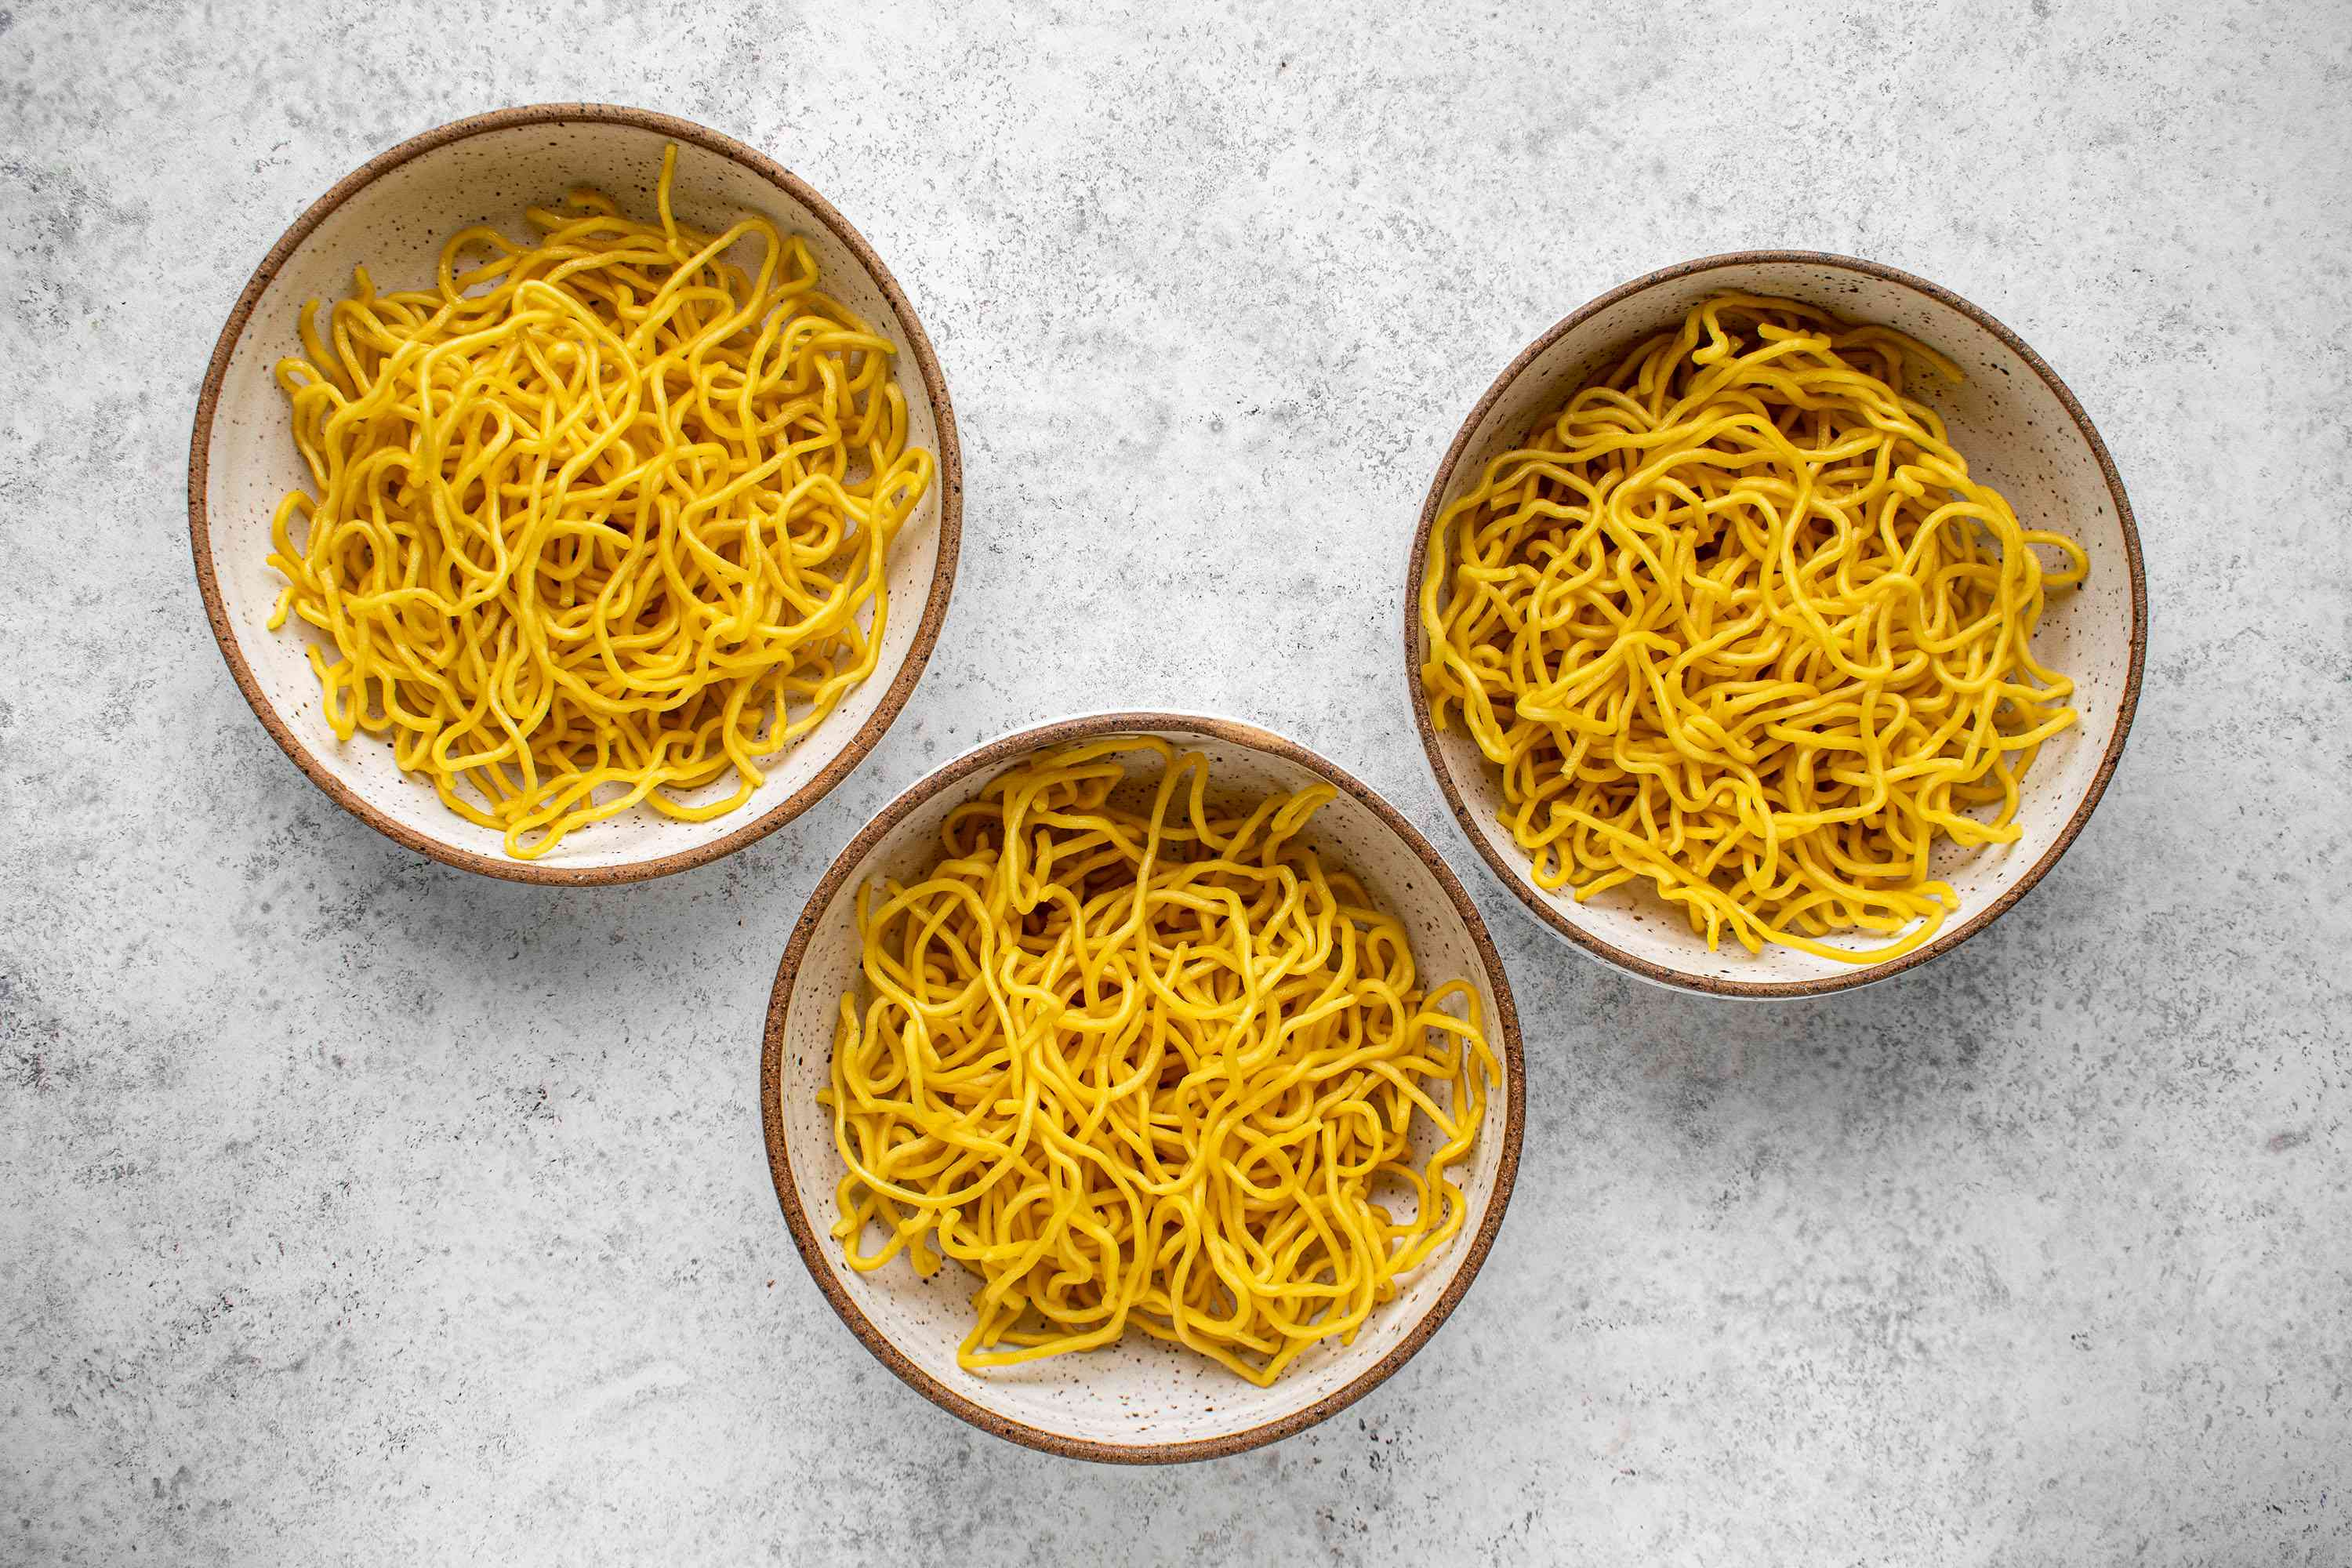 Divide the noodles among three bowls